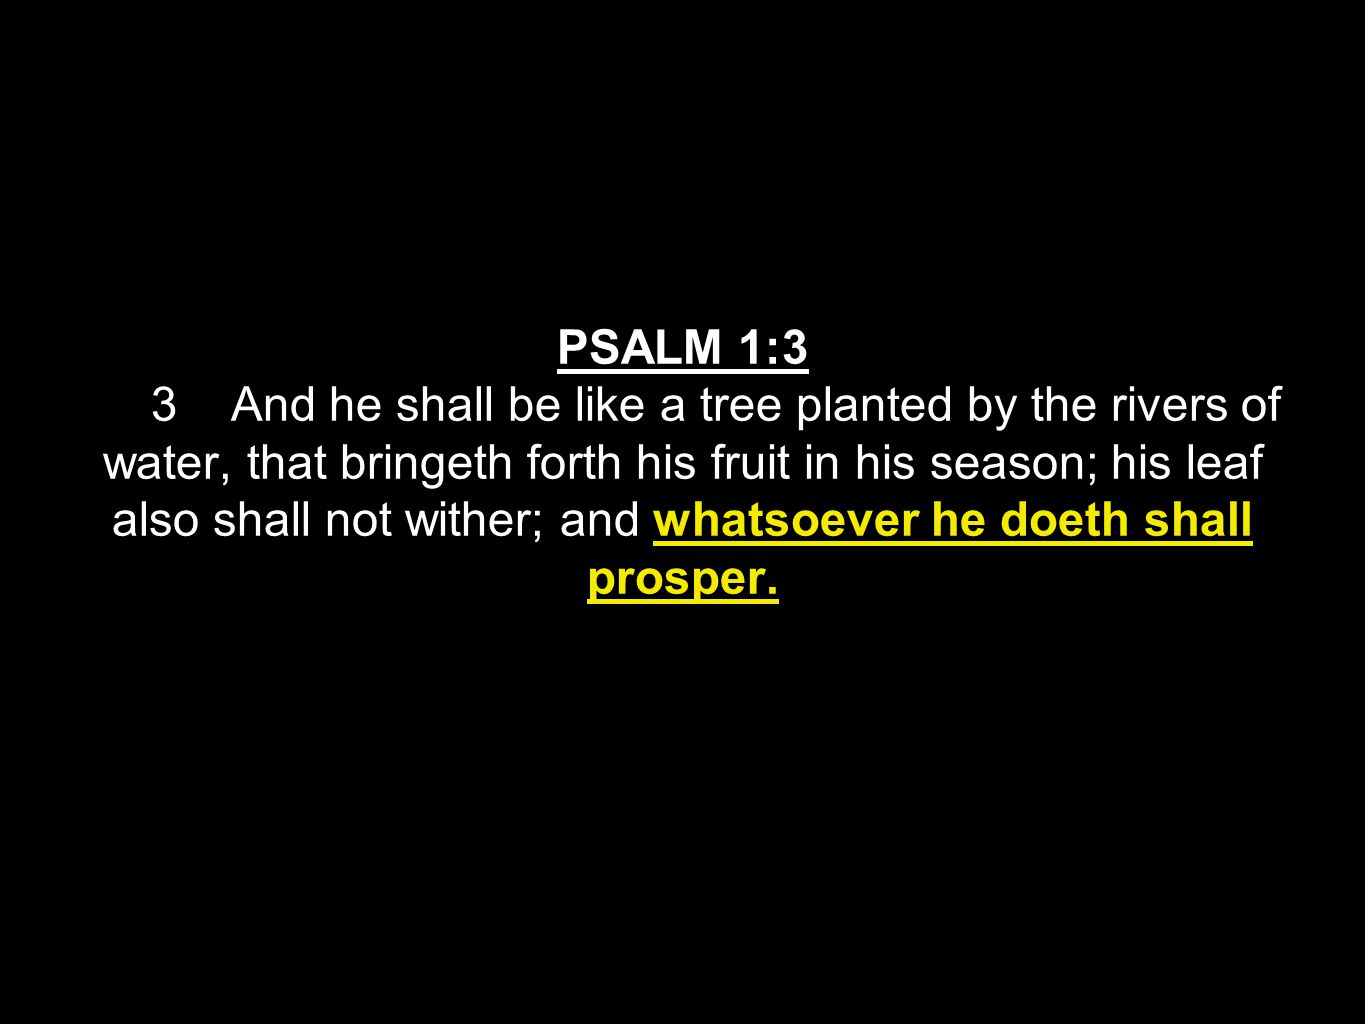 PSALM 1:3 3 And he shall be like a tree planted by the rivers of water, that bringeth forth his fruit in his season; his leaf also shall not wither; and whatsoever he doeth shall prosper.